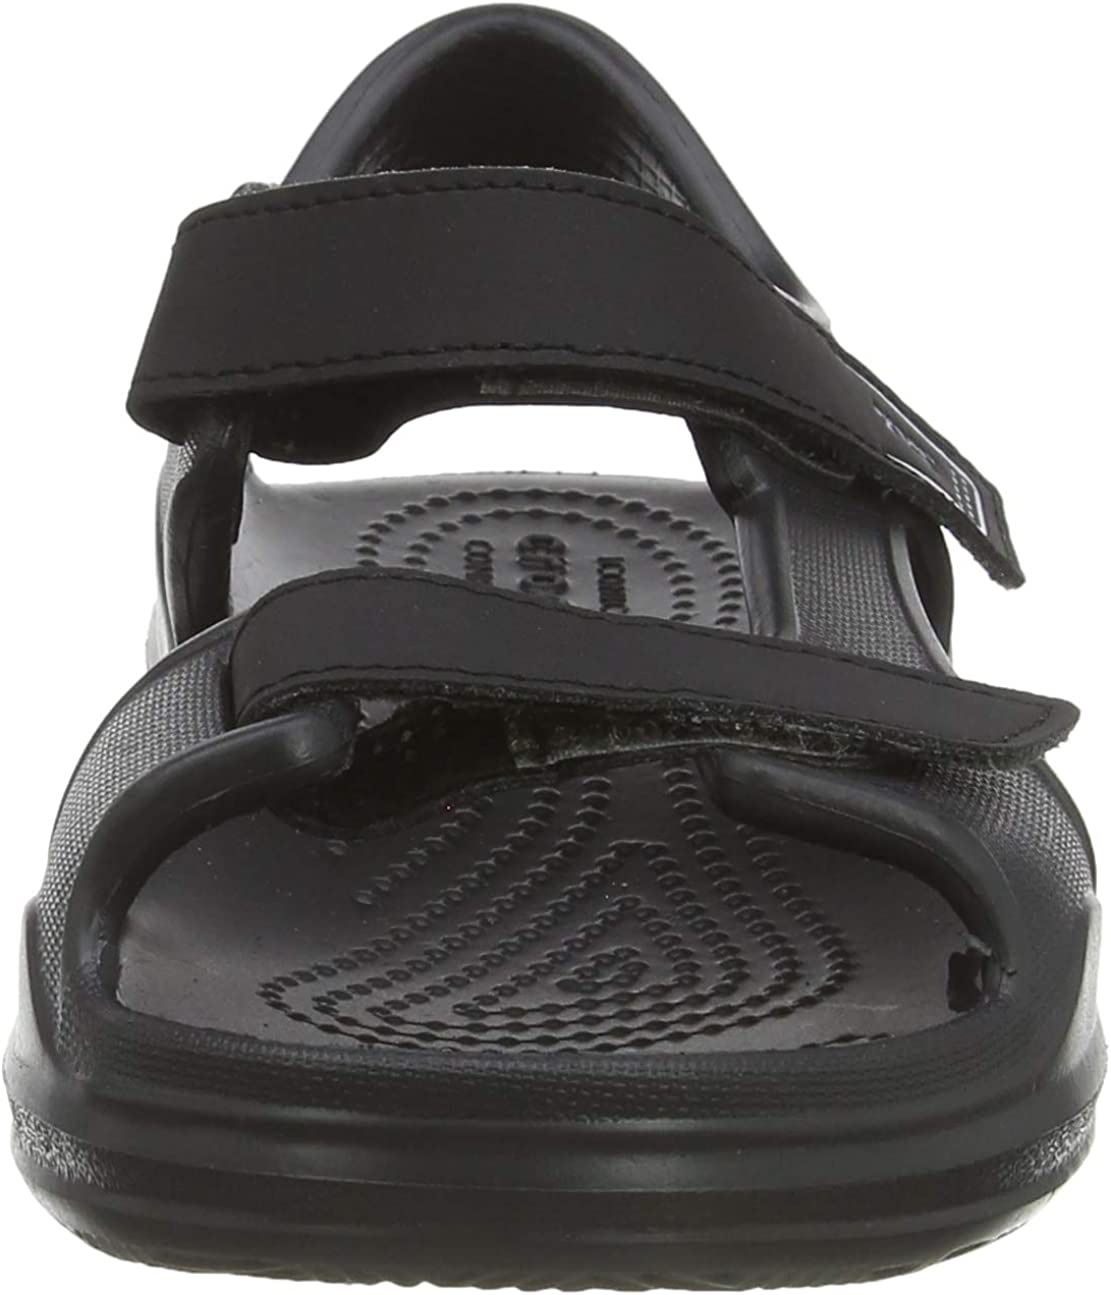 CROC Kids Swiftwater Expedition Sandal Water Shoes for Boys Girls Toddlers